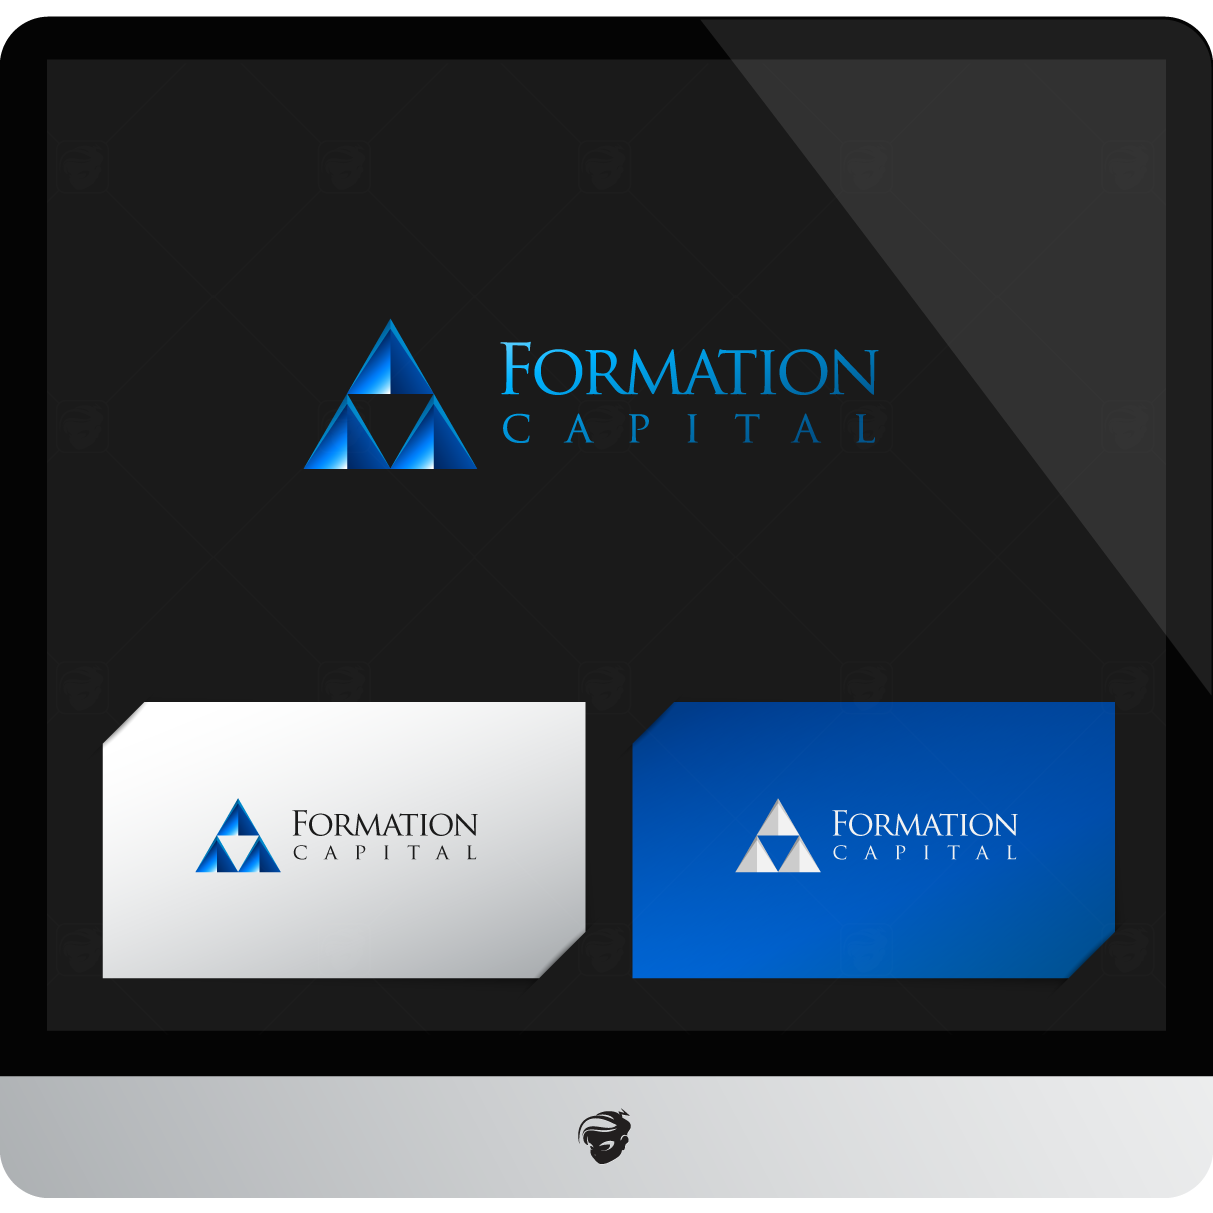 Logo Design by zesthar - Entry No. 227 in the Logo Design Contest Inspiring Logo Design for Formation Capital.